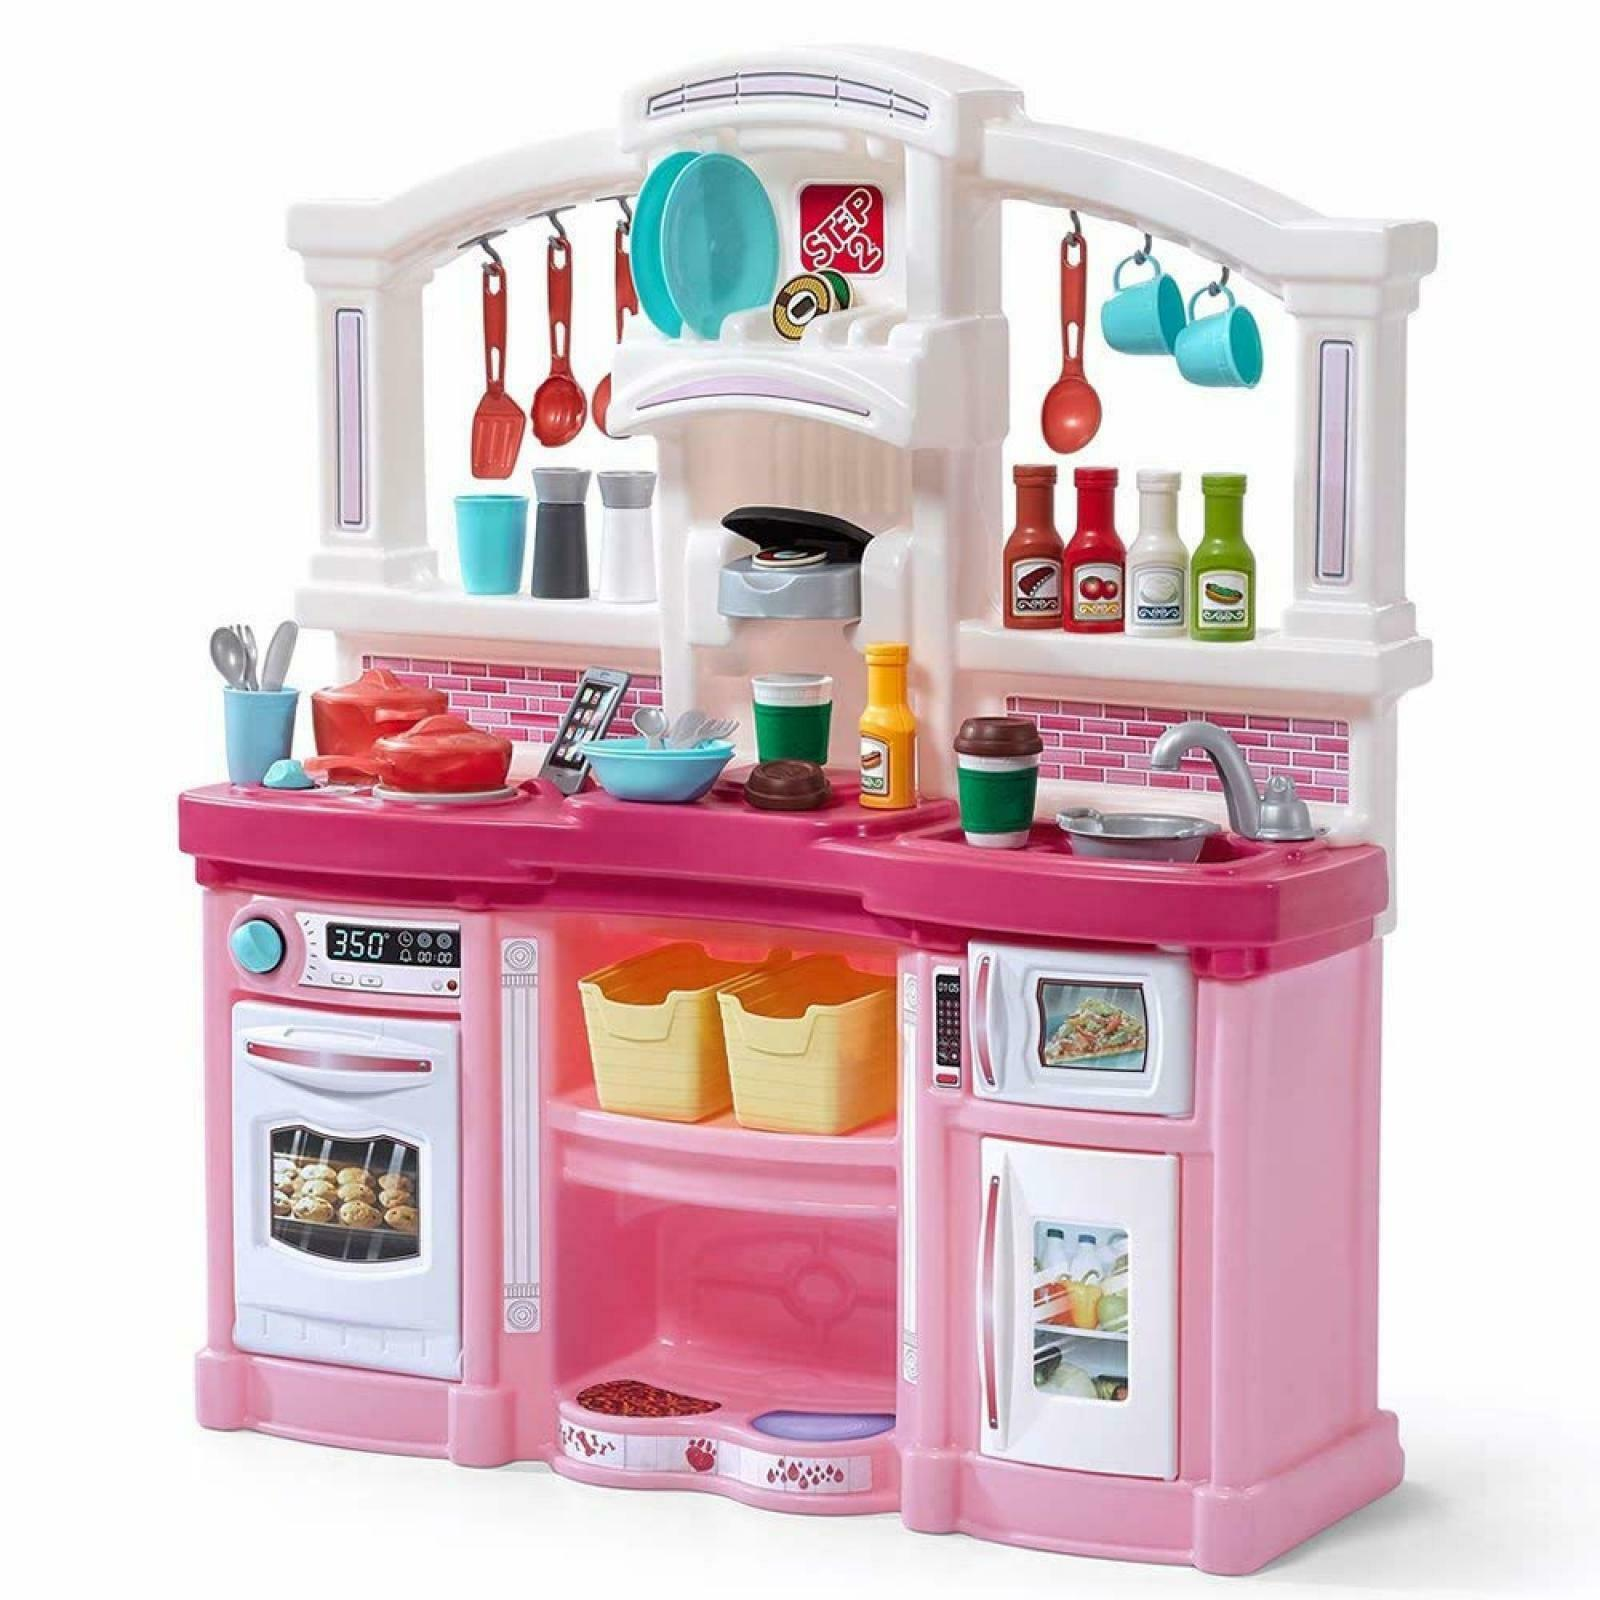 Kids Girls Boys Toddlers Kitchen Fun Pretend Play Battery Operated